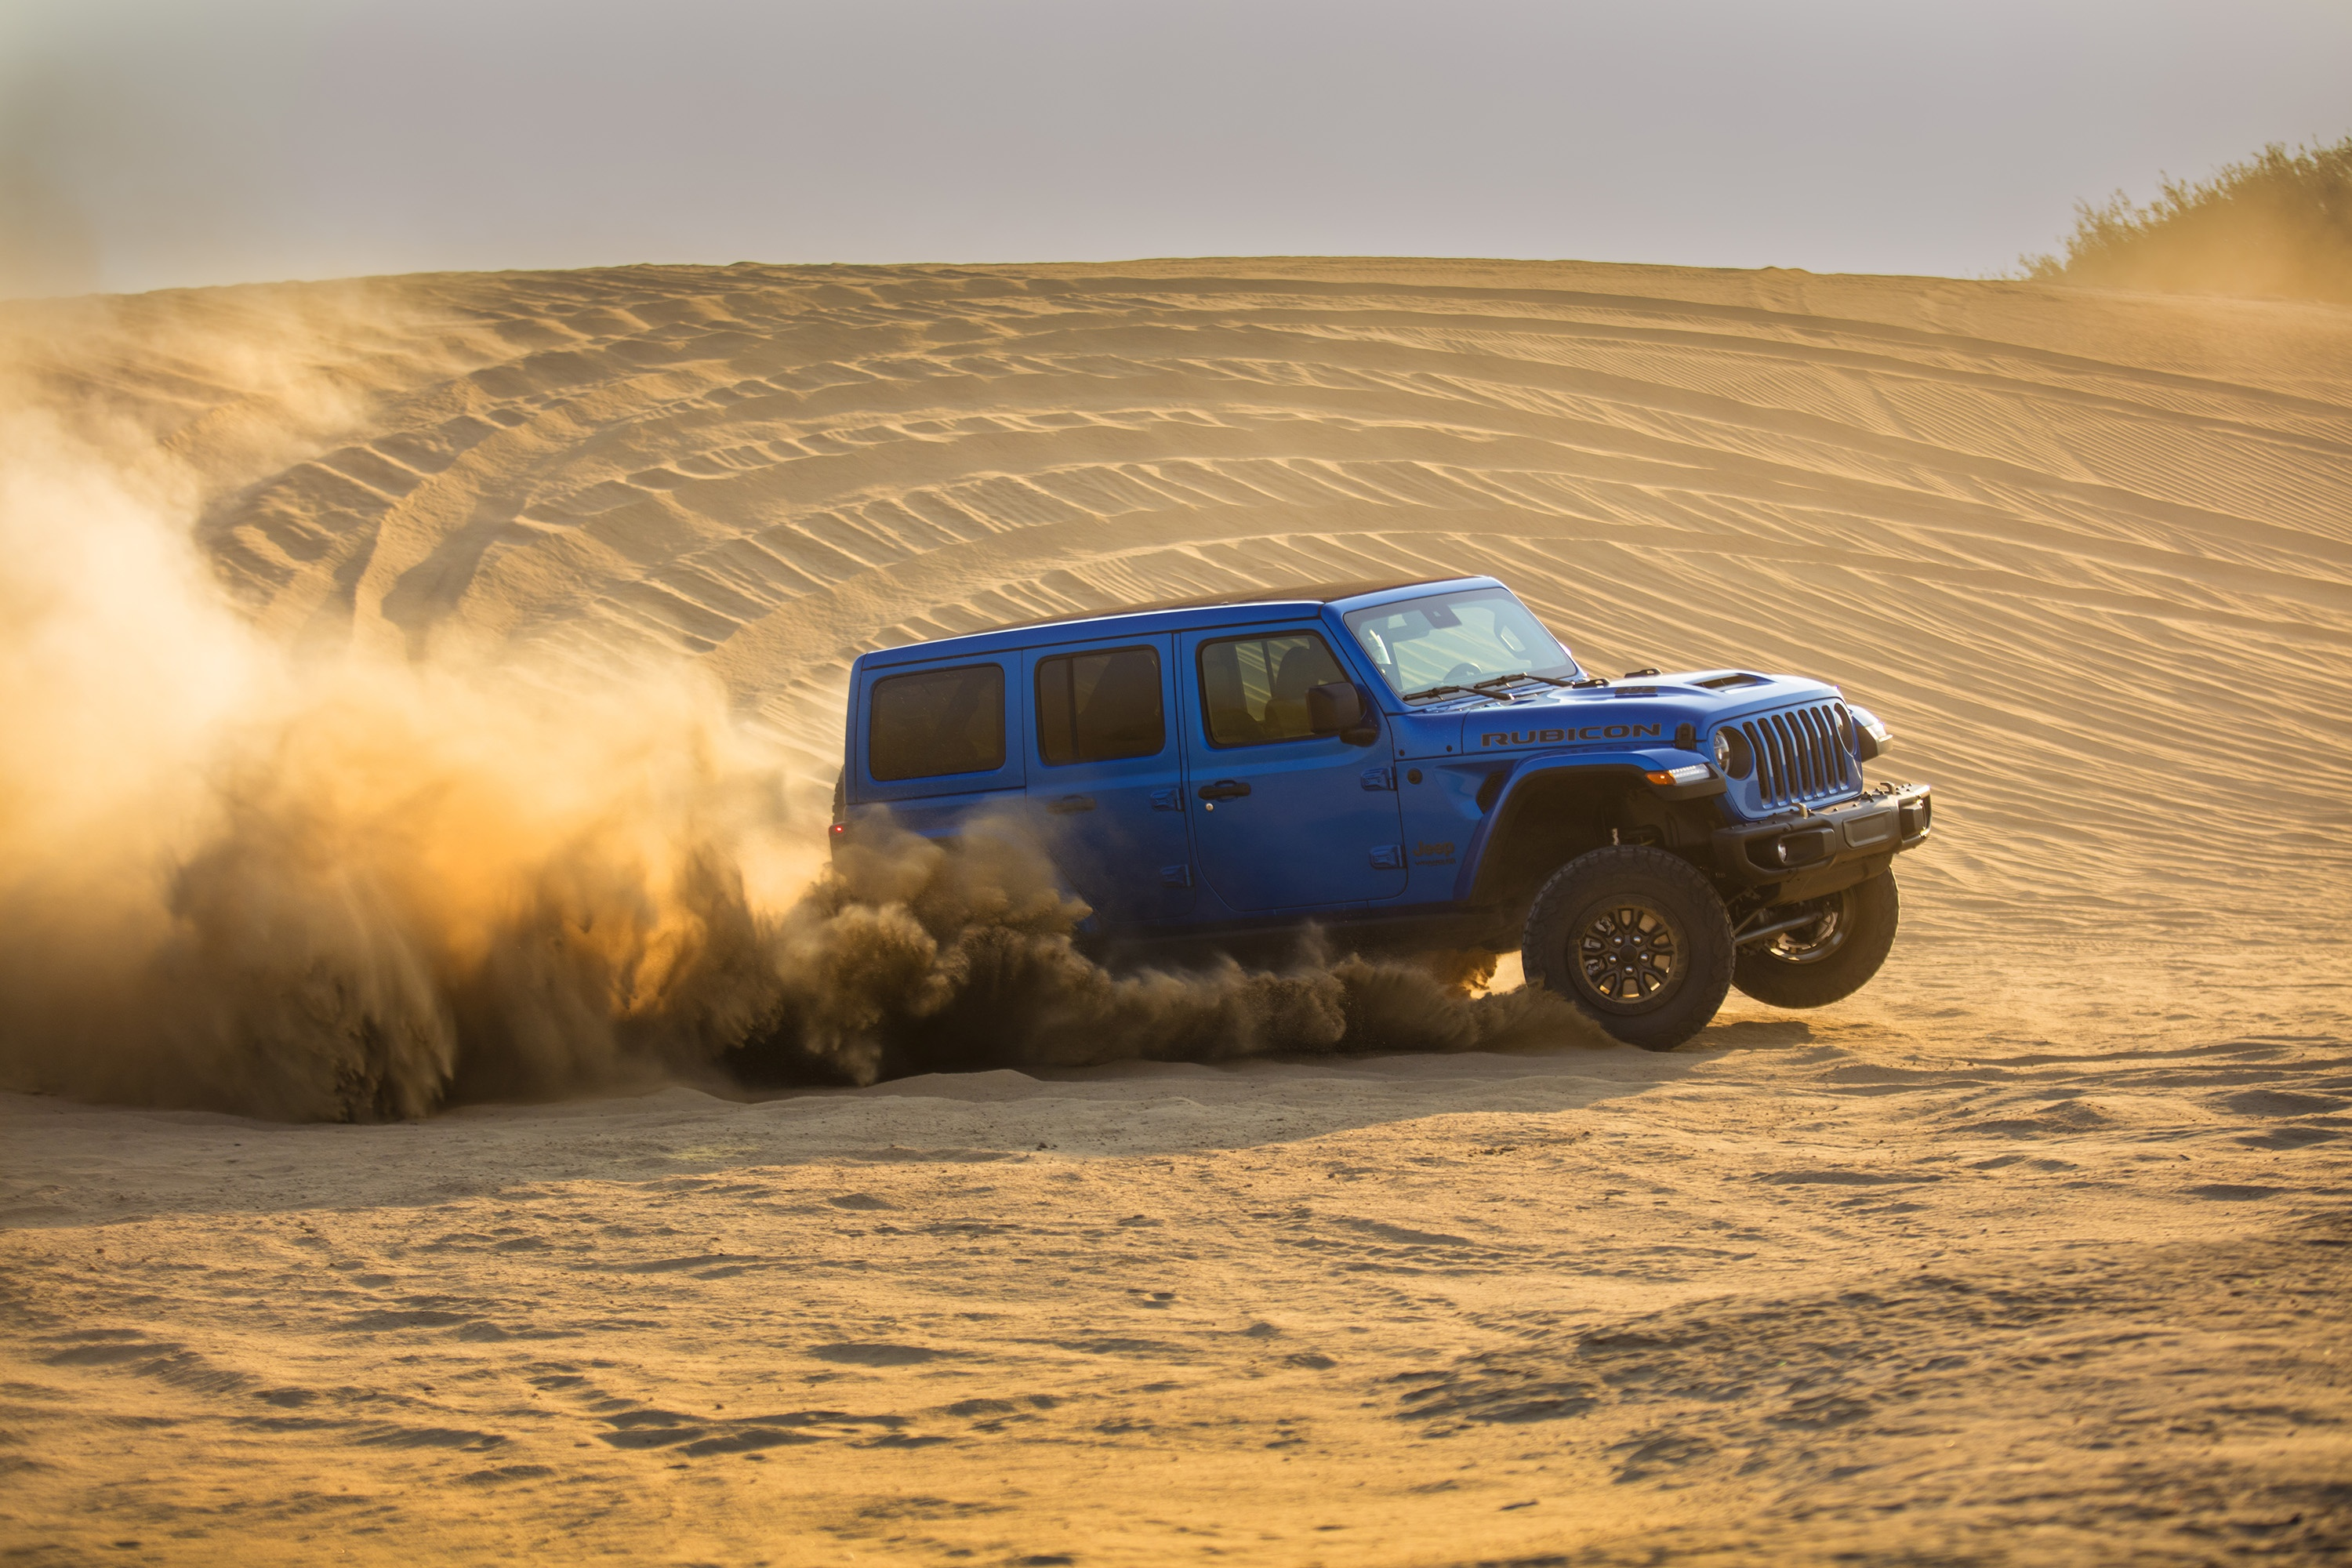 New 2021 Jeep® Wrangler Rubicon 392 Combines  Legendary 4x4 Capability with 470-horsepower V-8 Engine for The Most Capable Wrangler Yet